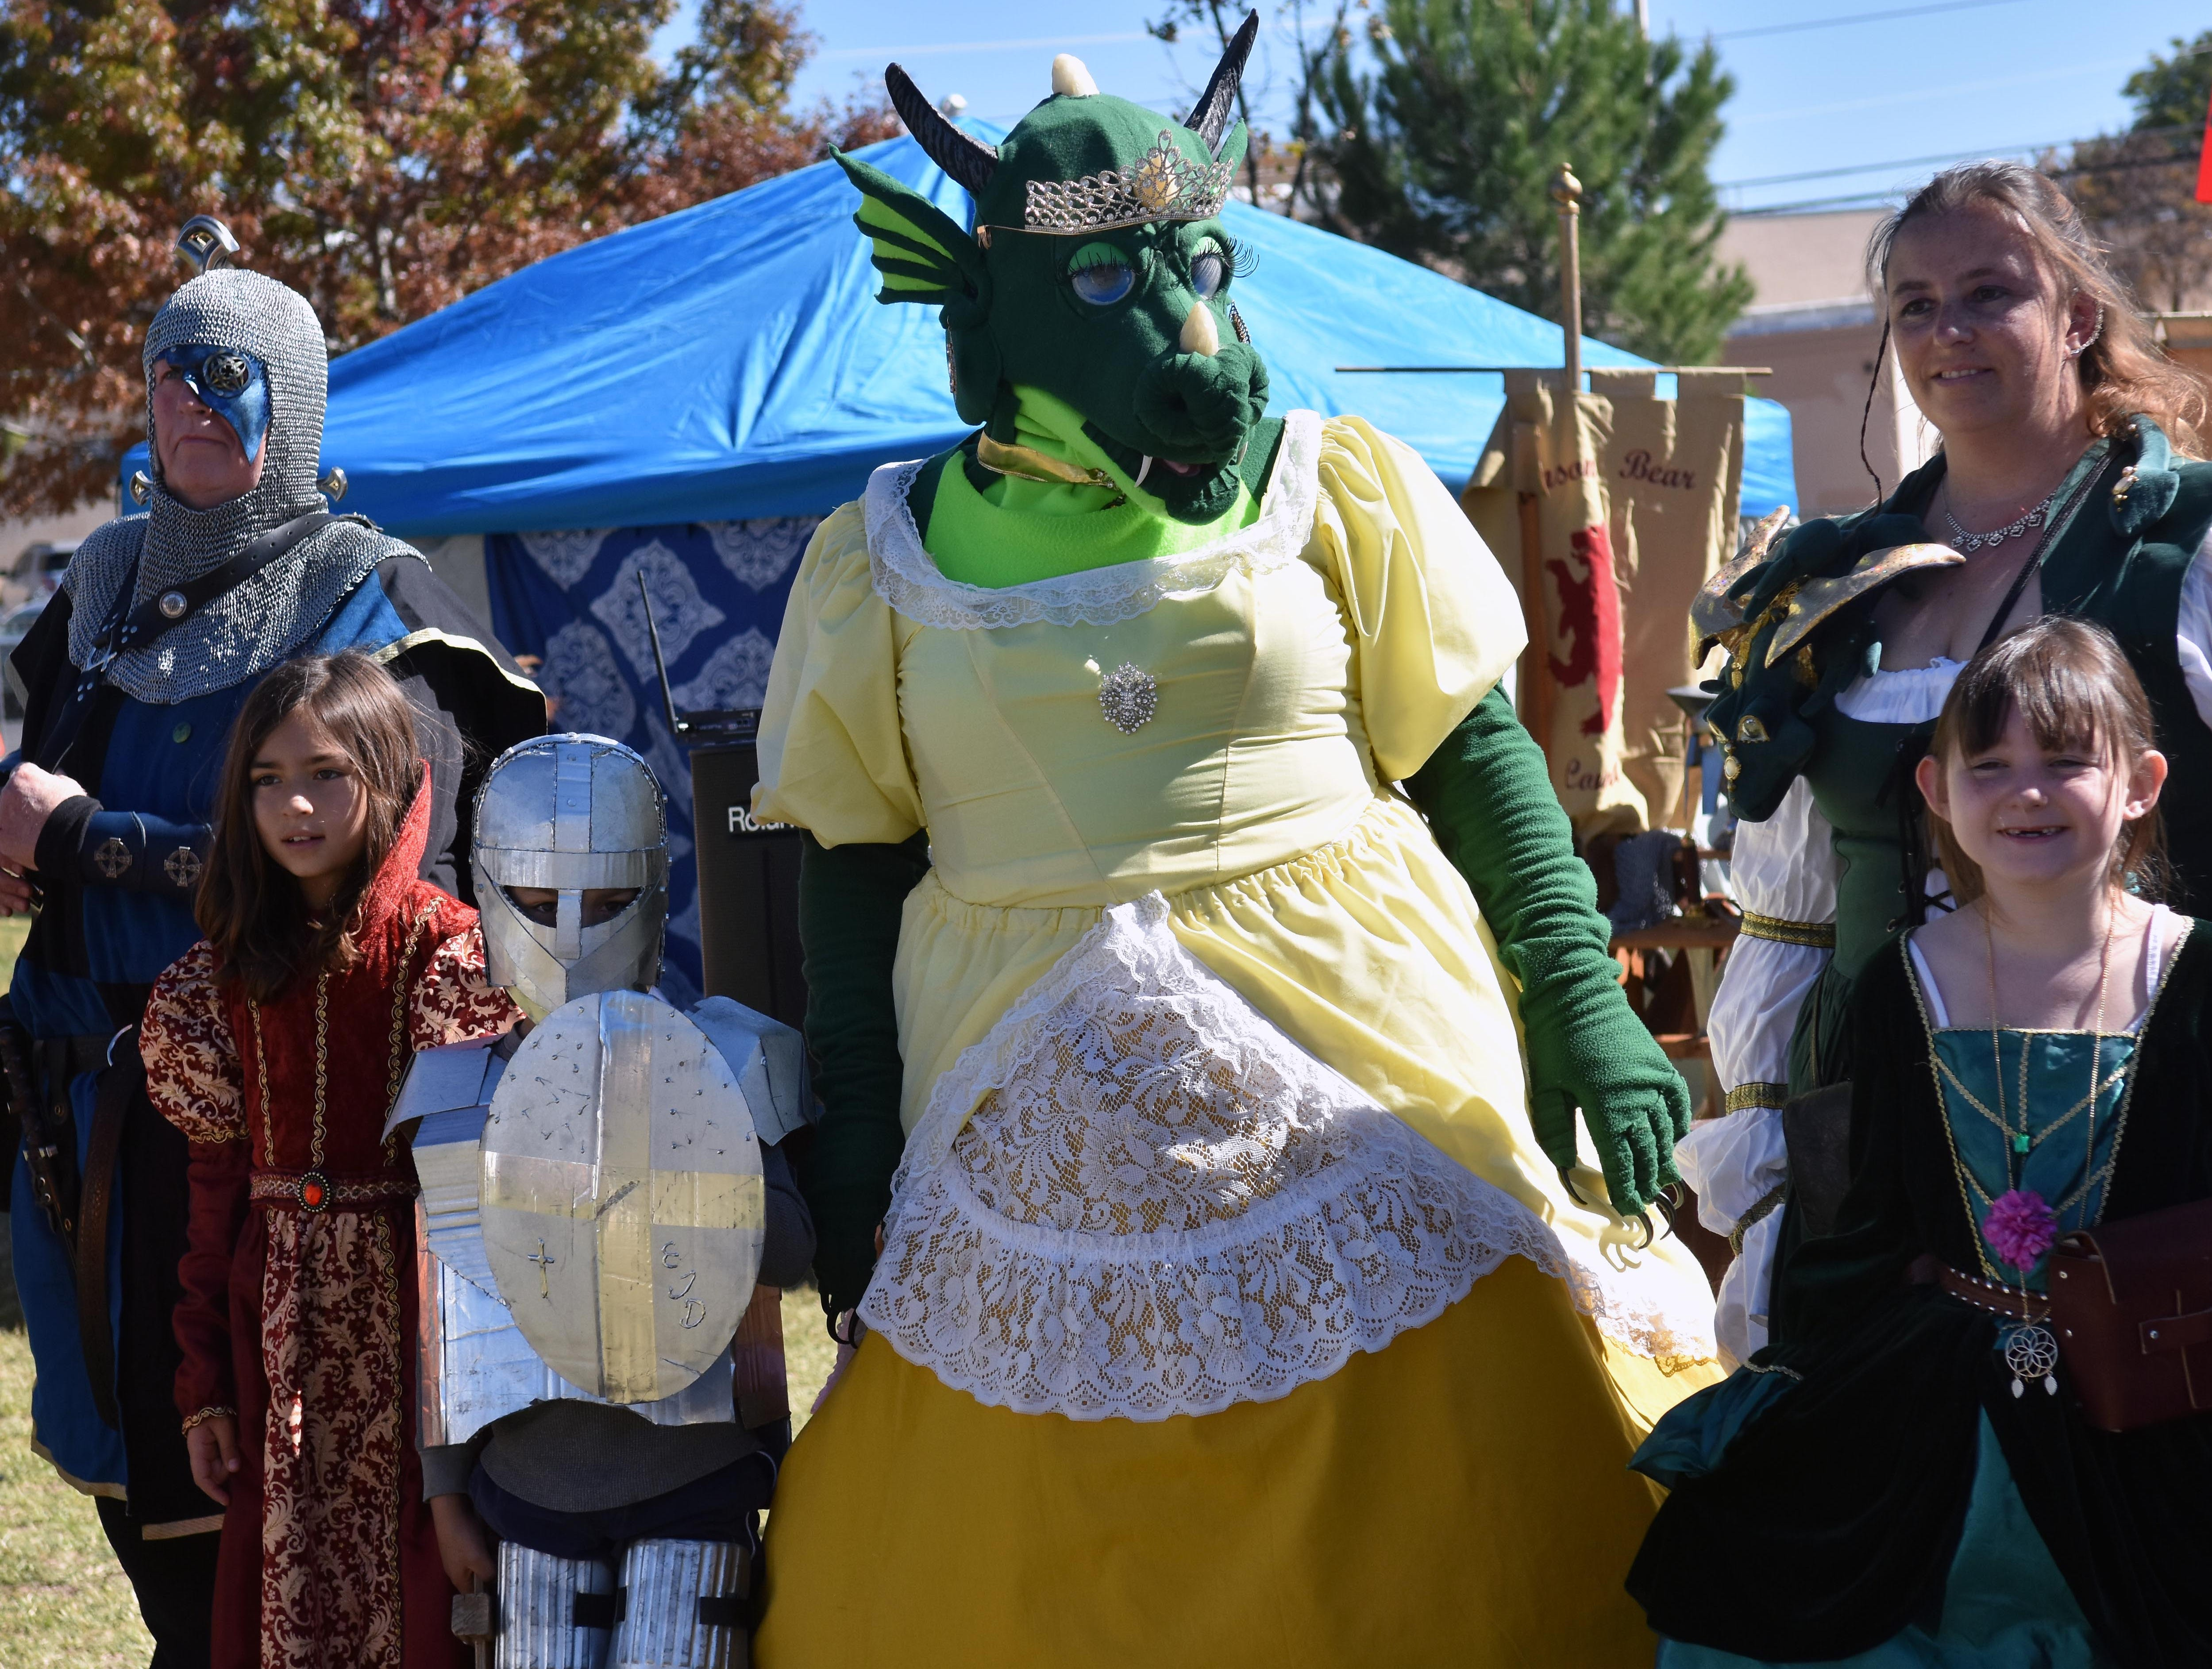 """Contestants line up to be judged in this year's costume competition.  """"Princess Sarna"""" (yellow dress) took first place.  Photo taken 11/3/18."""